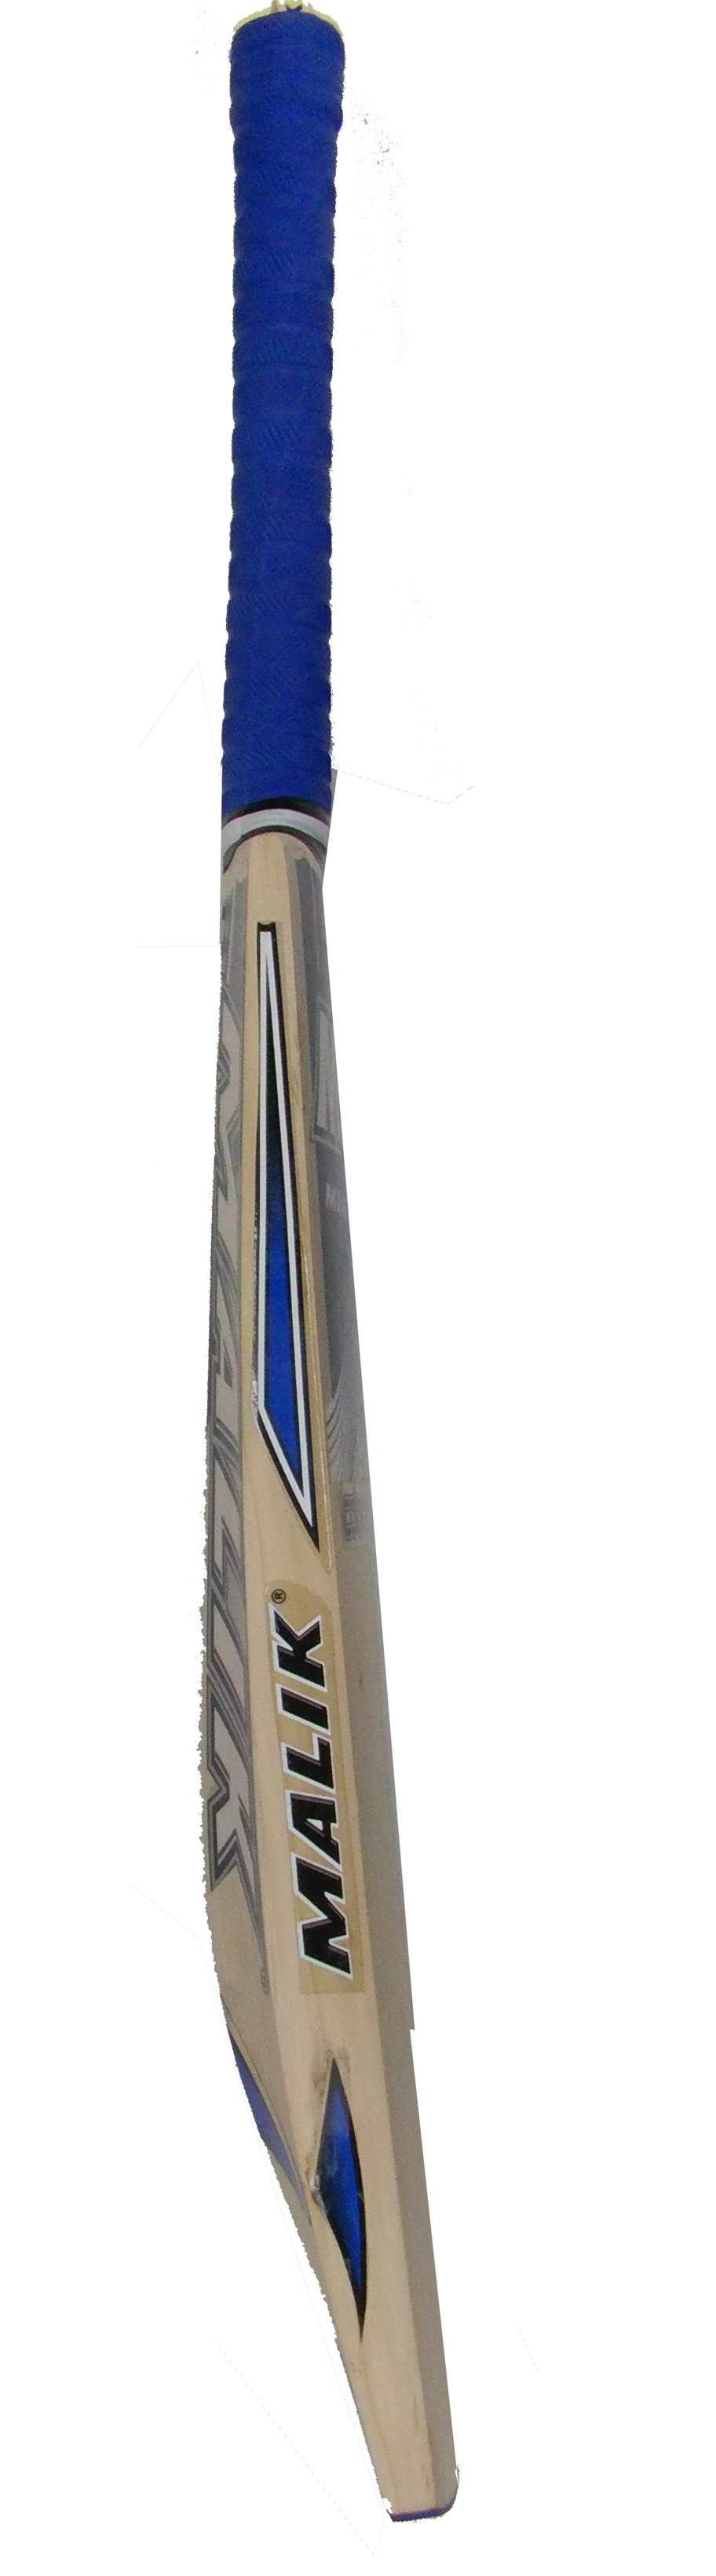 Mb Malik County English Willow Cricket Bat SH 2.7 Lbs Free Bag